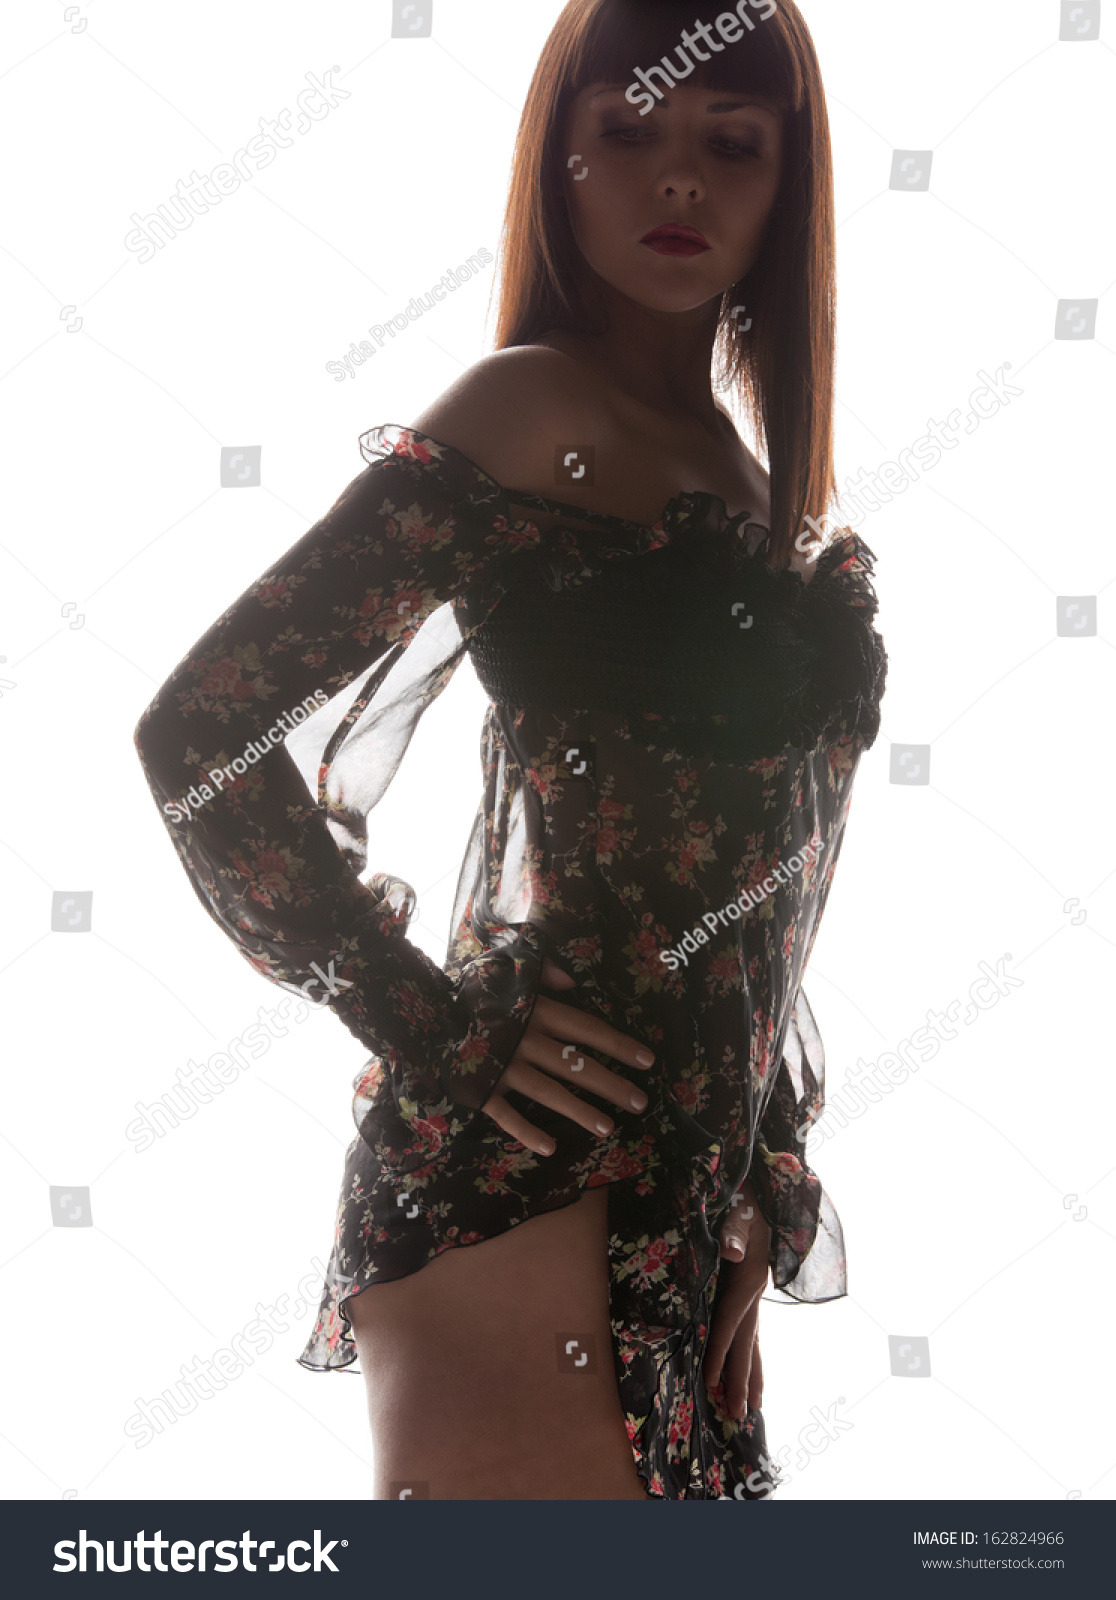 Fashion Glamour Concept Silhouette Backlight Picture Stock Photo 162824966 Shutterstock